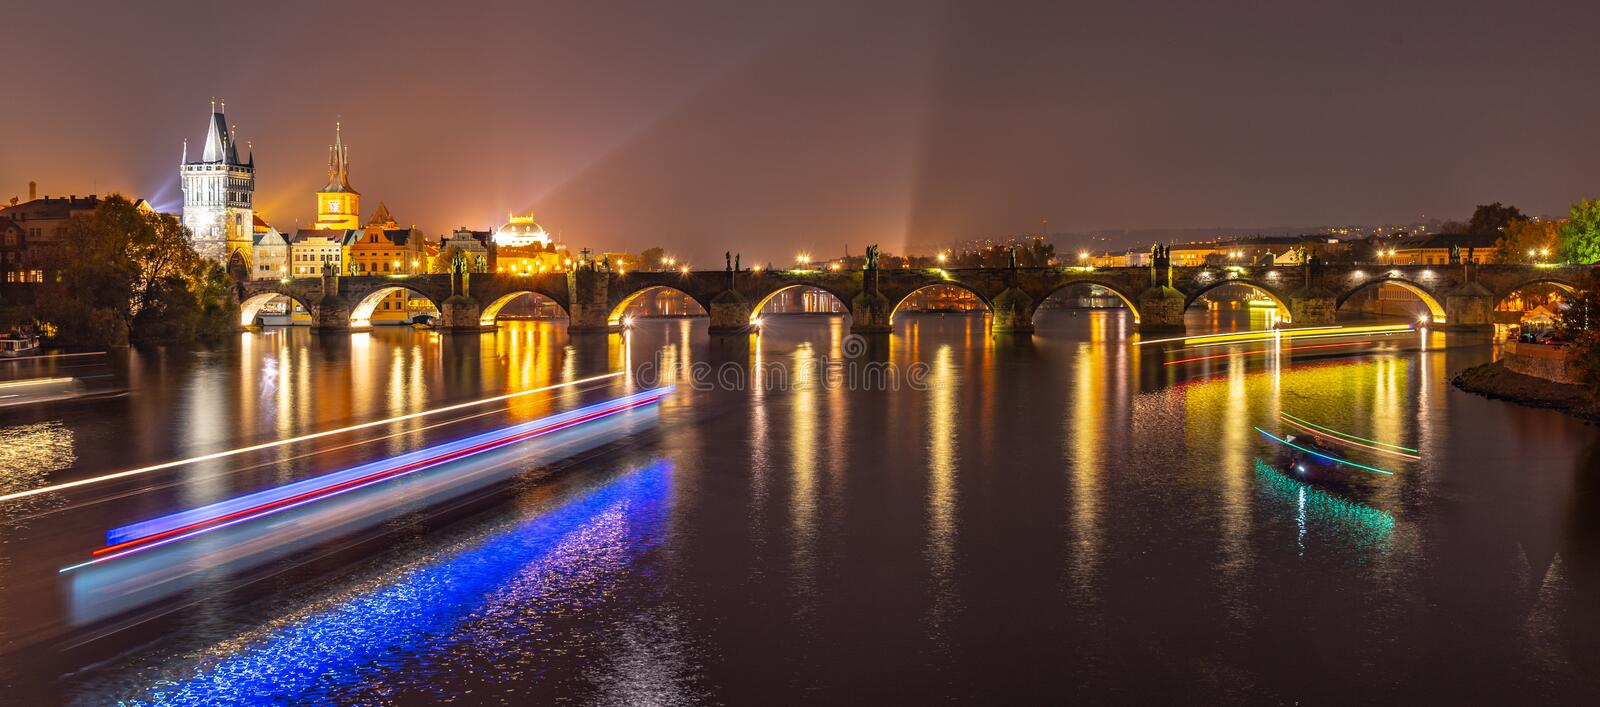 Vltava River with boat neon light lines and Charles Bridge with Old Town Bridge Tower by night, Prague, Czechia. UNESCO stock images